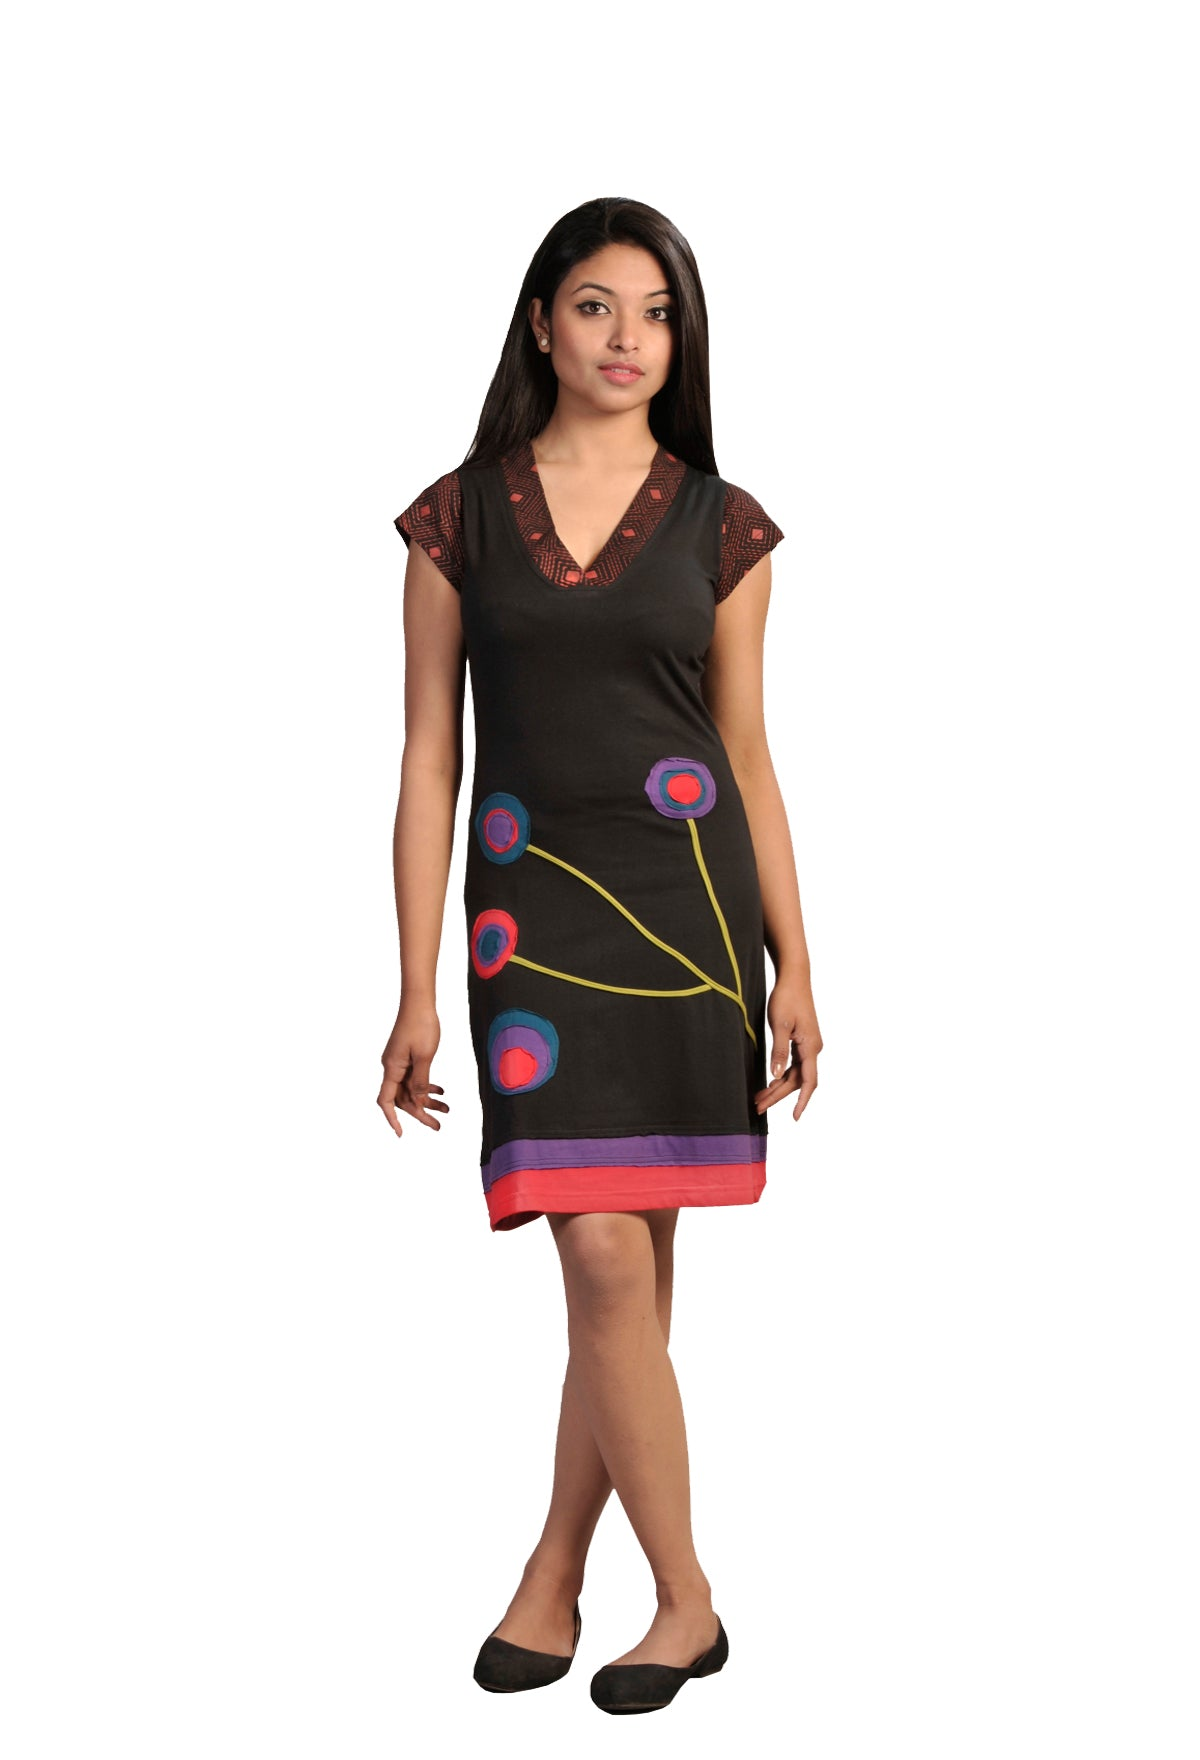 Ladies Short Sleeved Dress With Multicolored Embroidery & Patch design- SN1162 - Craze Trade Limited